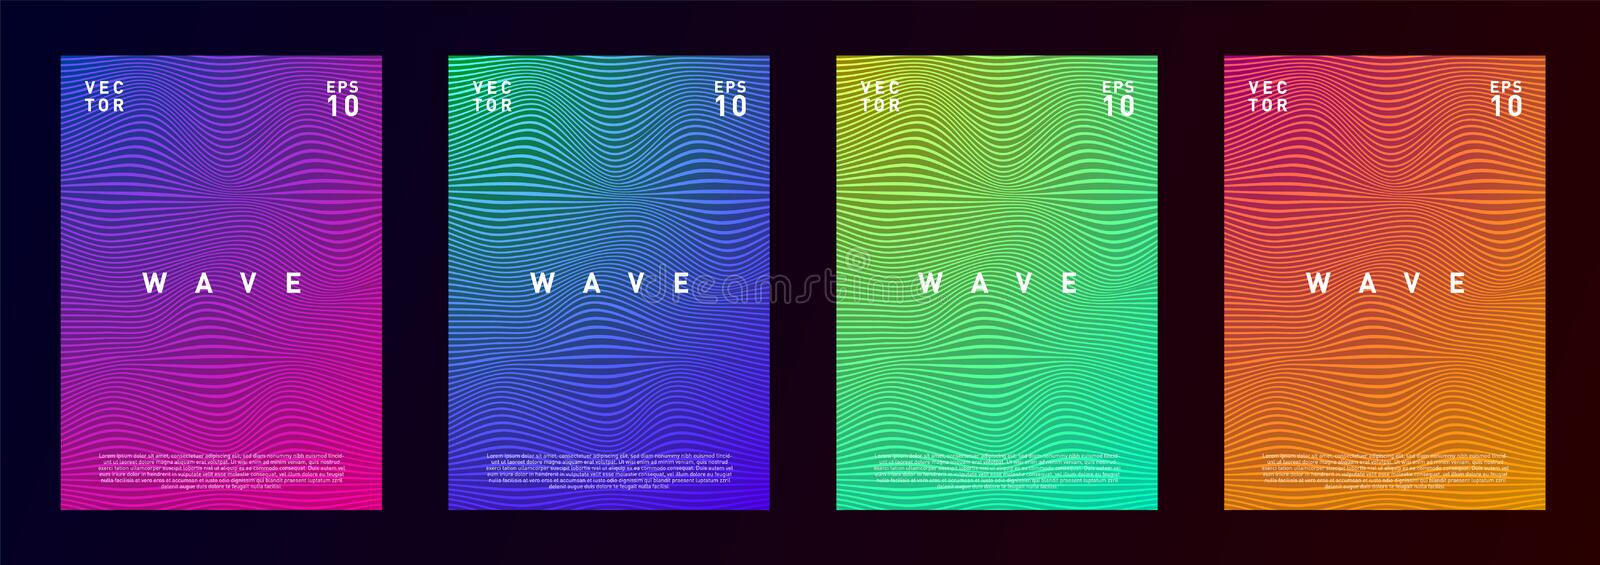 Set of wave lines gradient texture fluid background design for advertising, journal, flyer, poster, brochure, covers in vector illustration